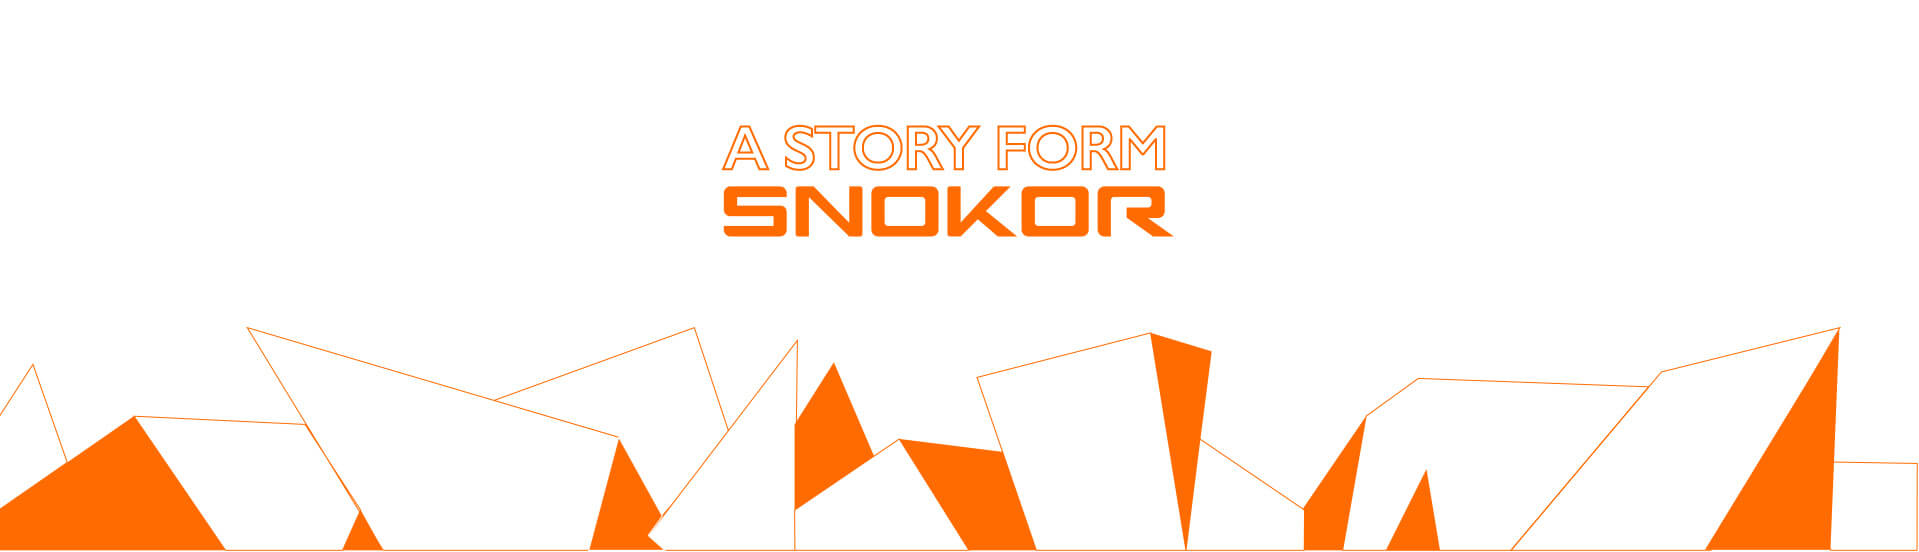 [image] Snokor Kenya Facts about the Brand